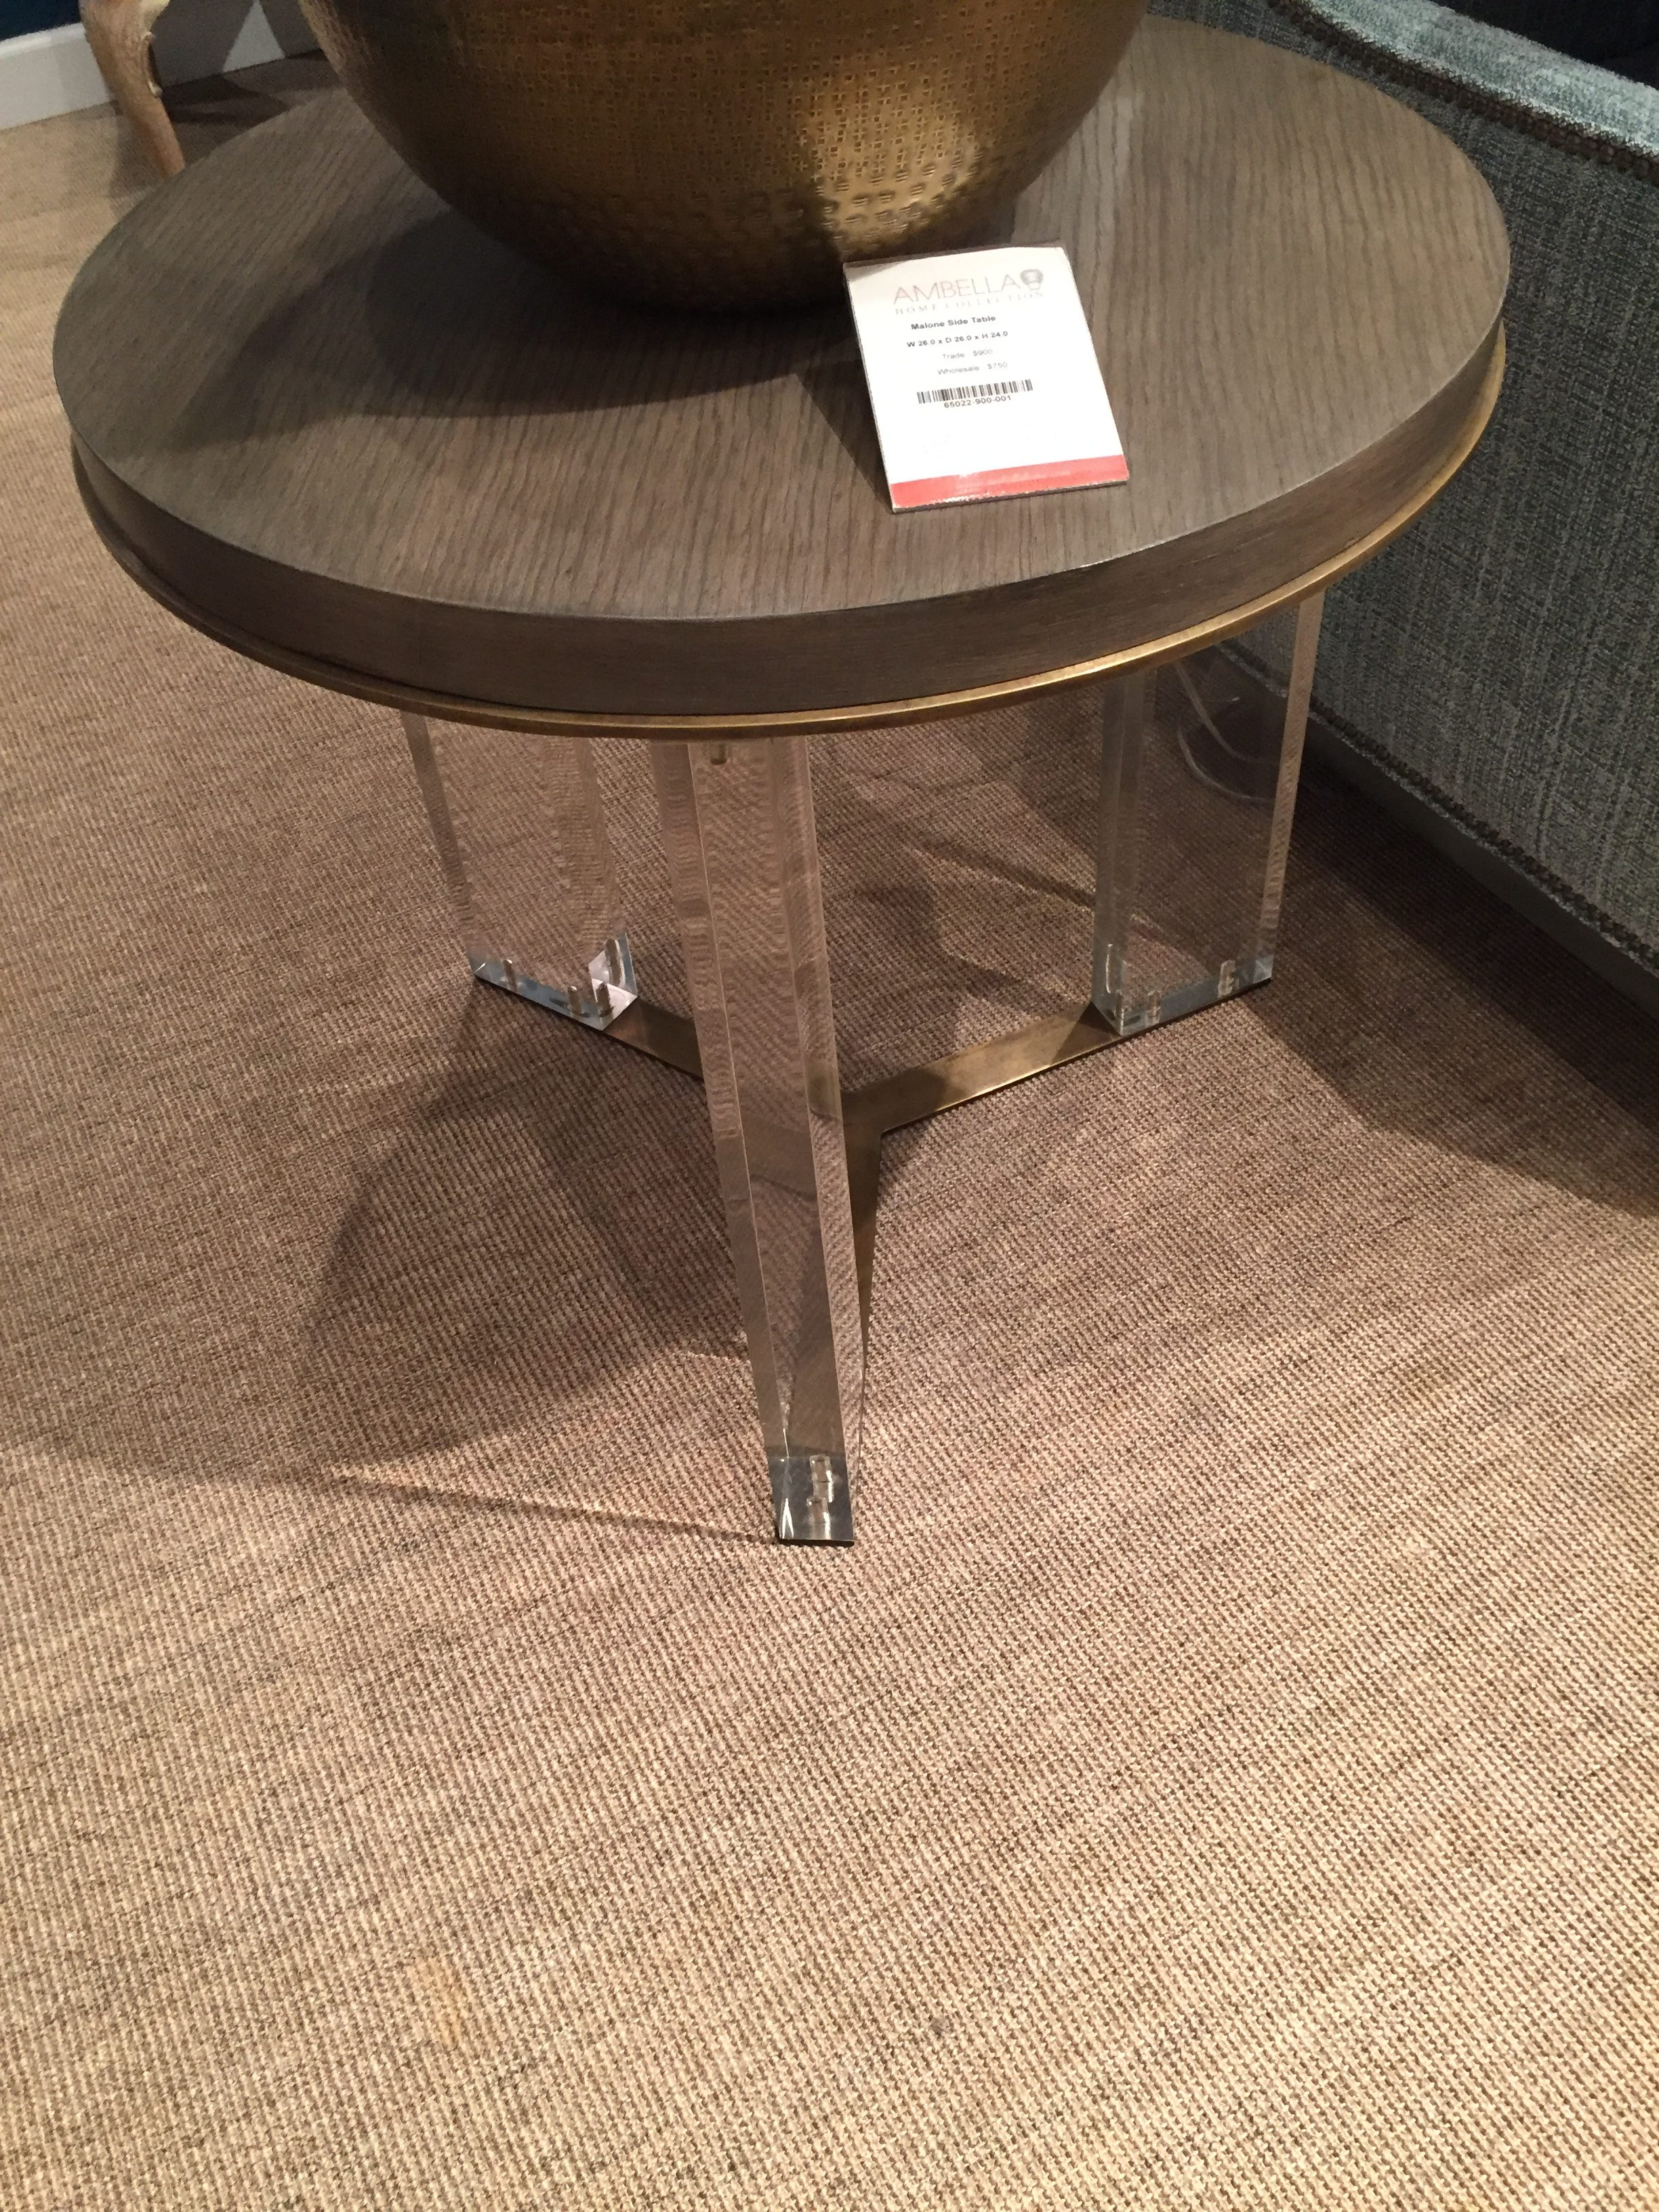 {Round side table with acrylic legs. From  Ambella Home .}